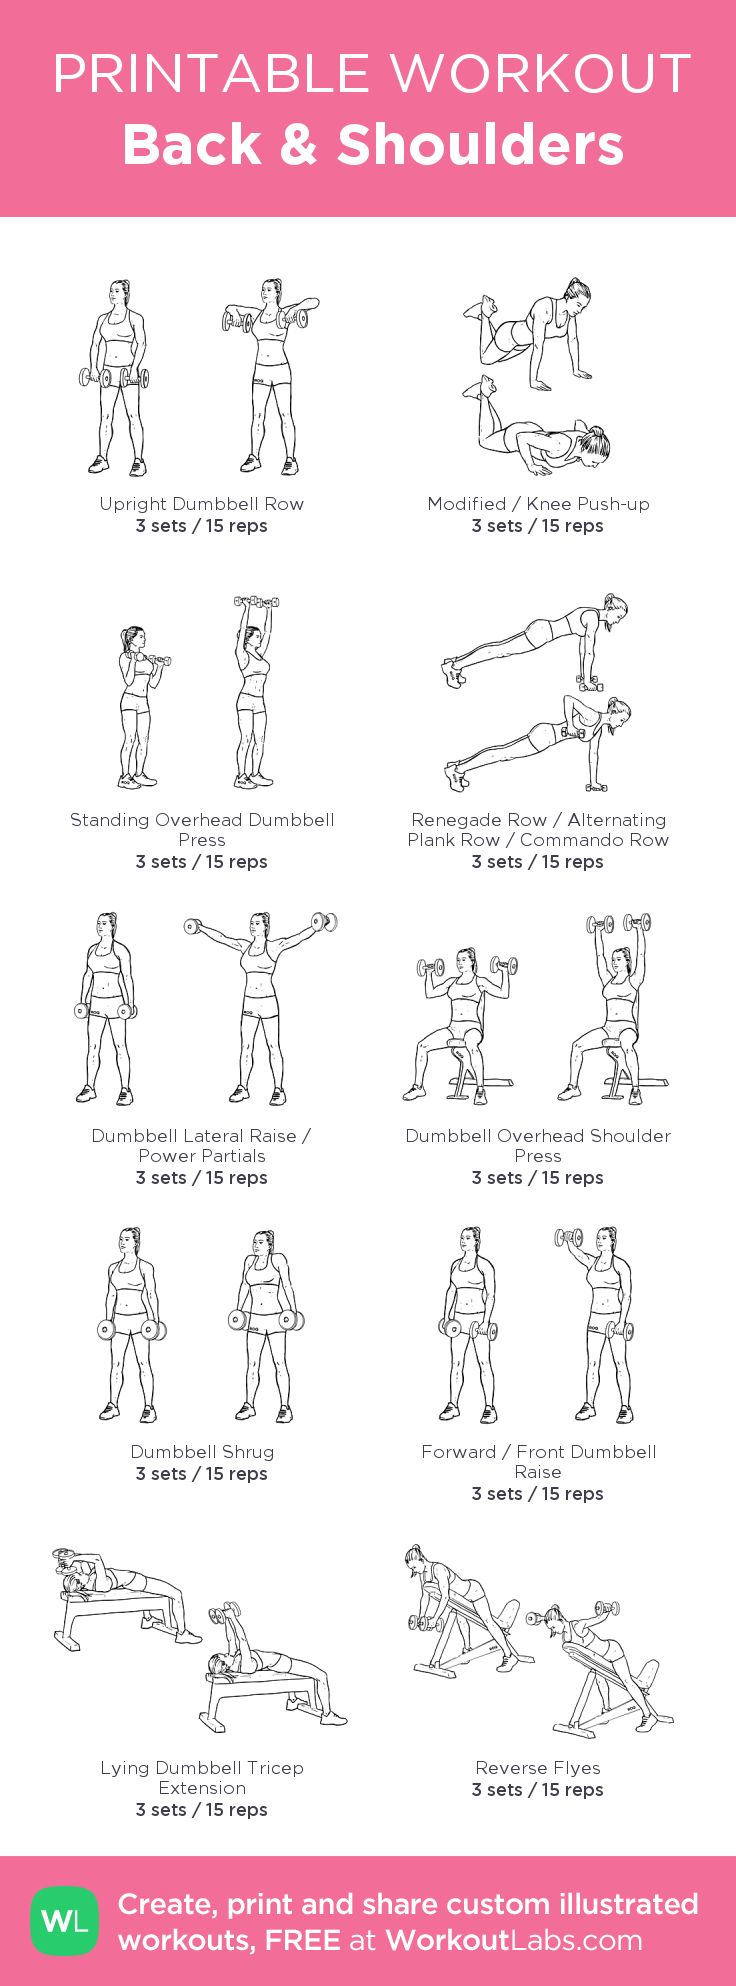 Back & Shoulders:my visual workout created at WorkoutLabs.com • Click through to customize and download as a FREE PDF! #customworkout